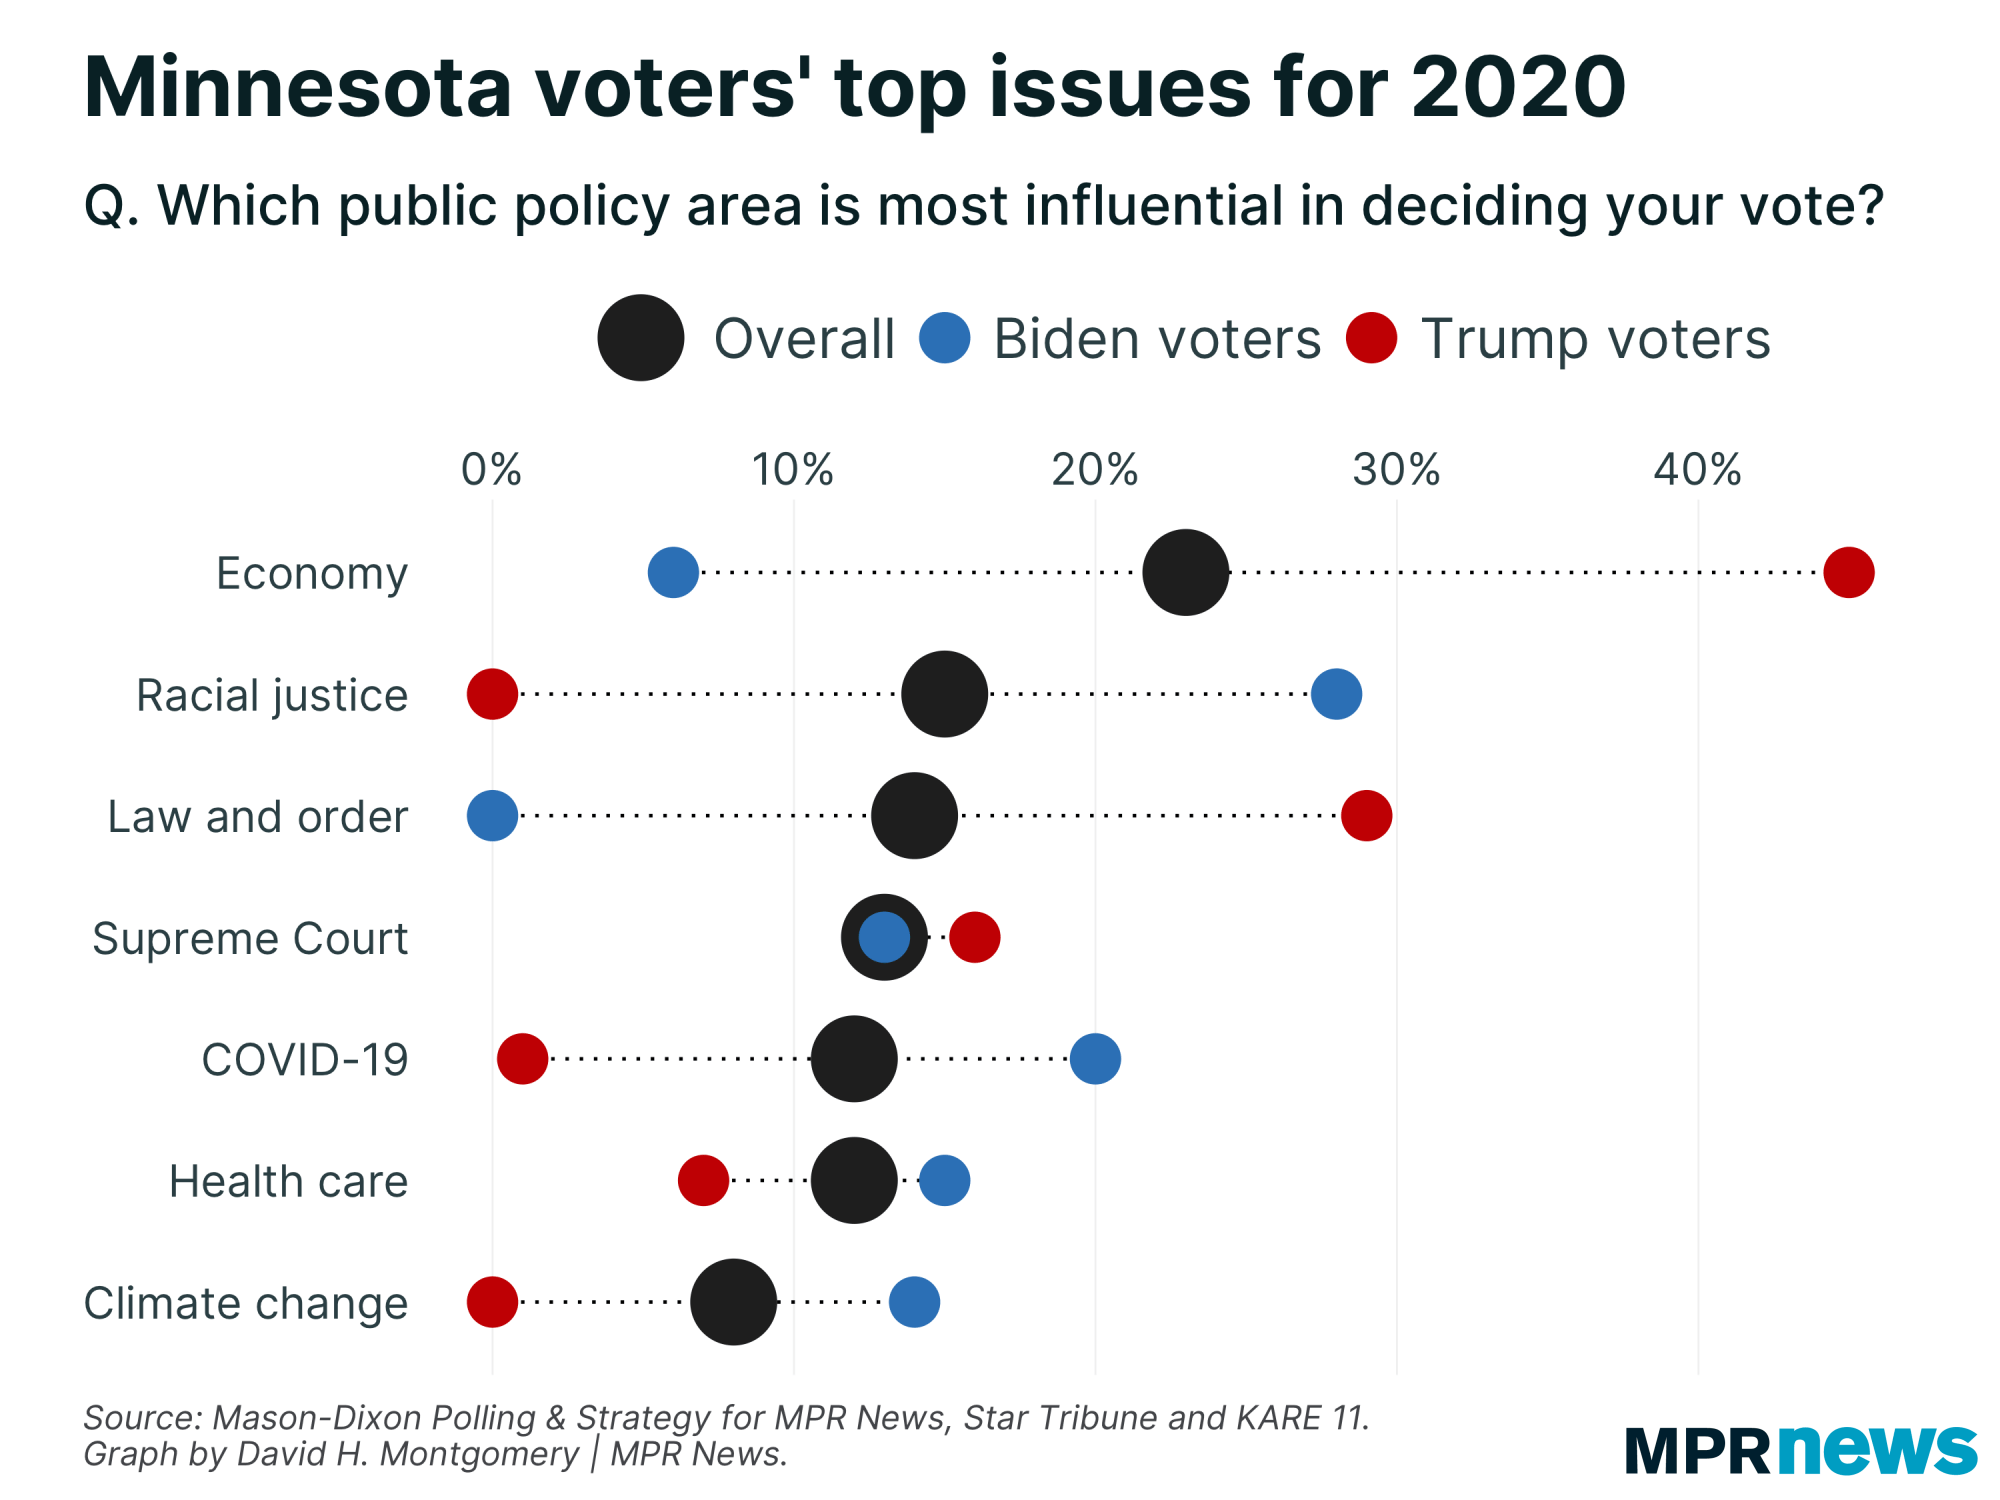 Poll question on Minnesota voters' top issues for 2020